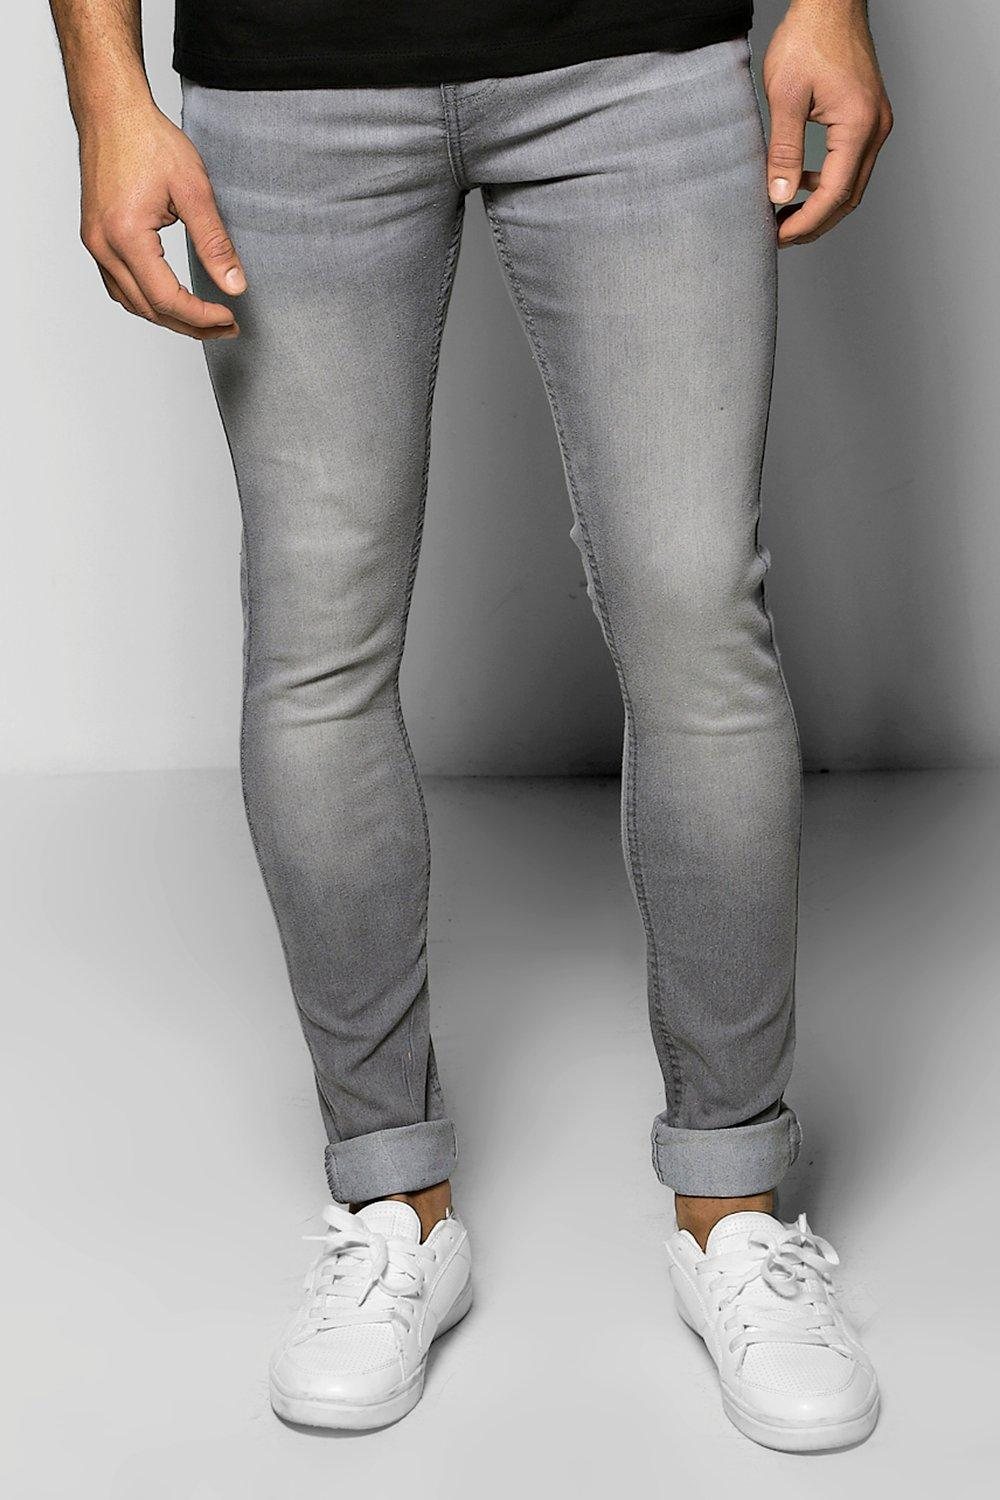 Grey Spray On Skinny Jeans